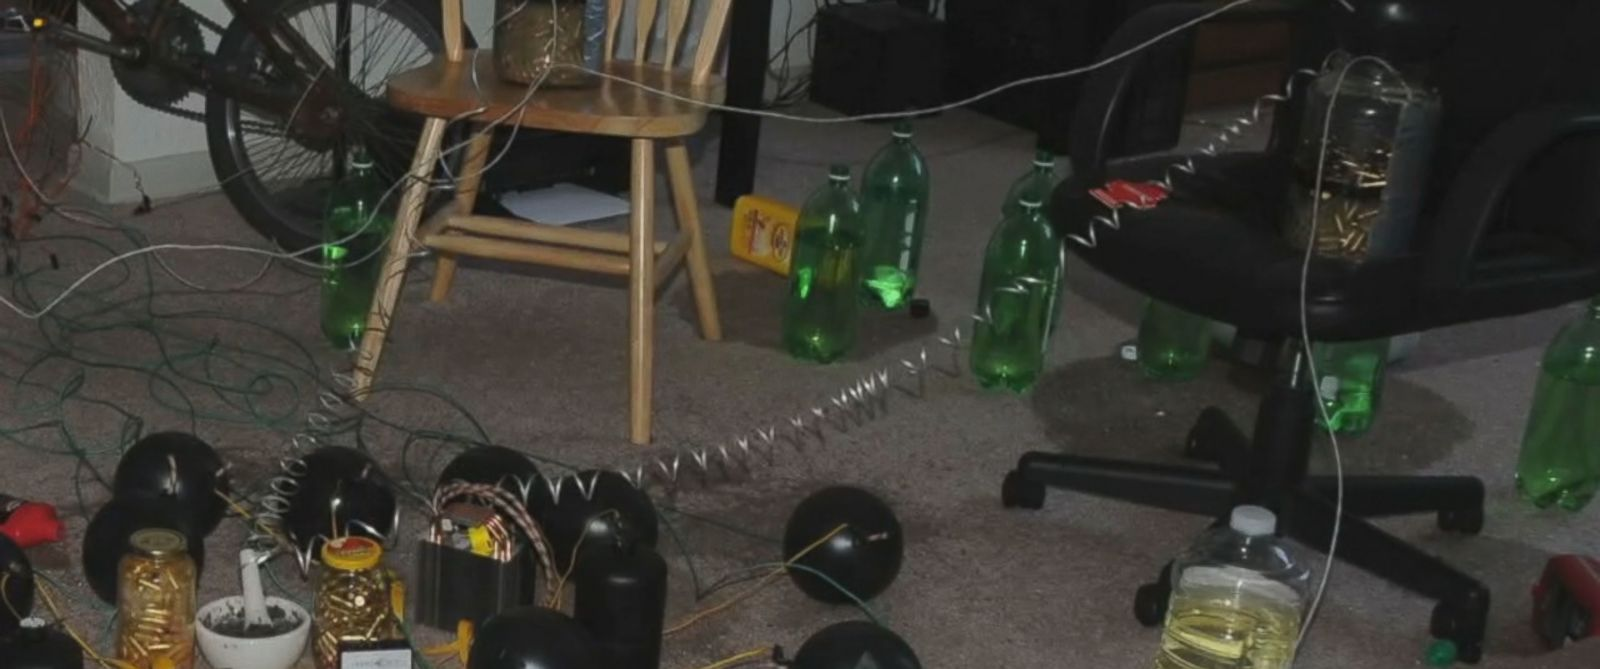 PHOTO: A still from unreleased video shows the Aurora movie theater gunmans booby-trapped apartment.